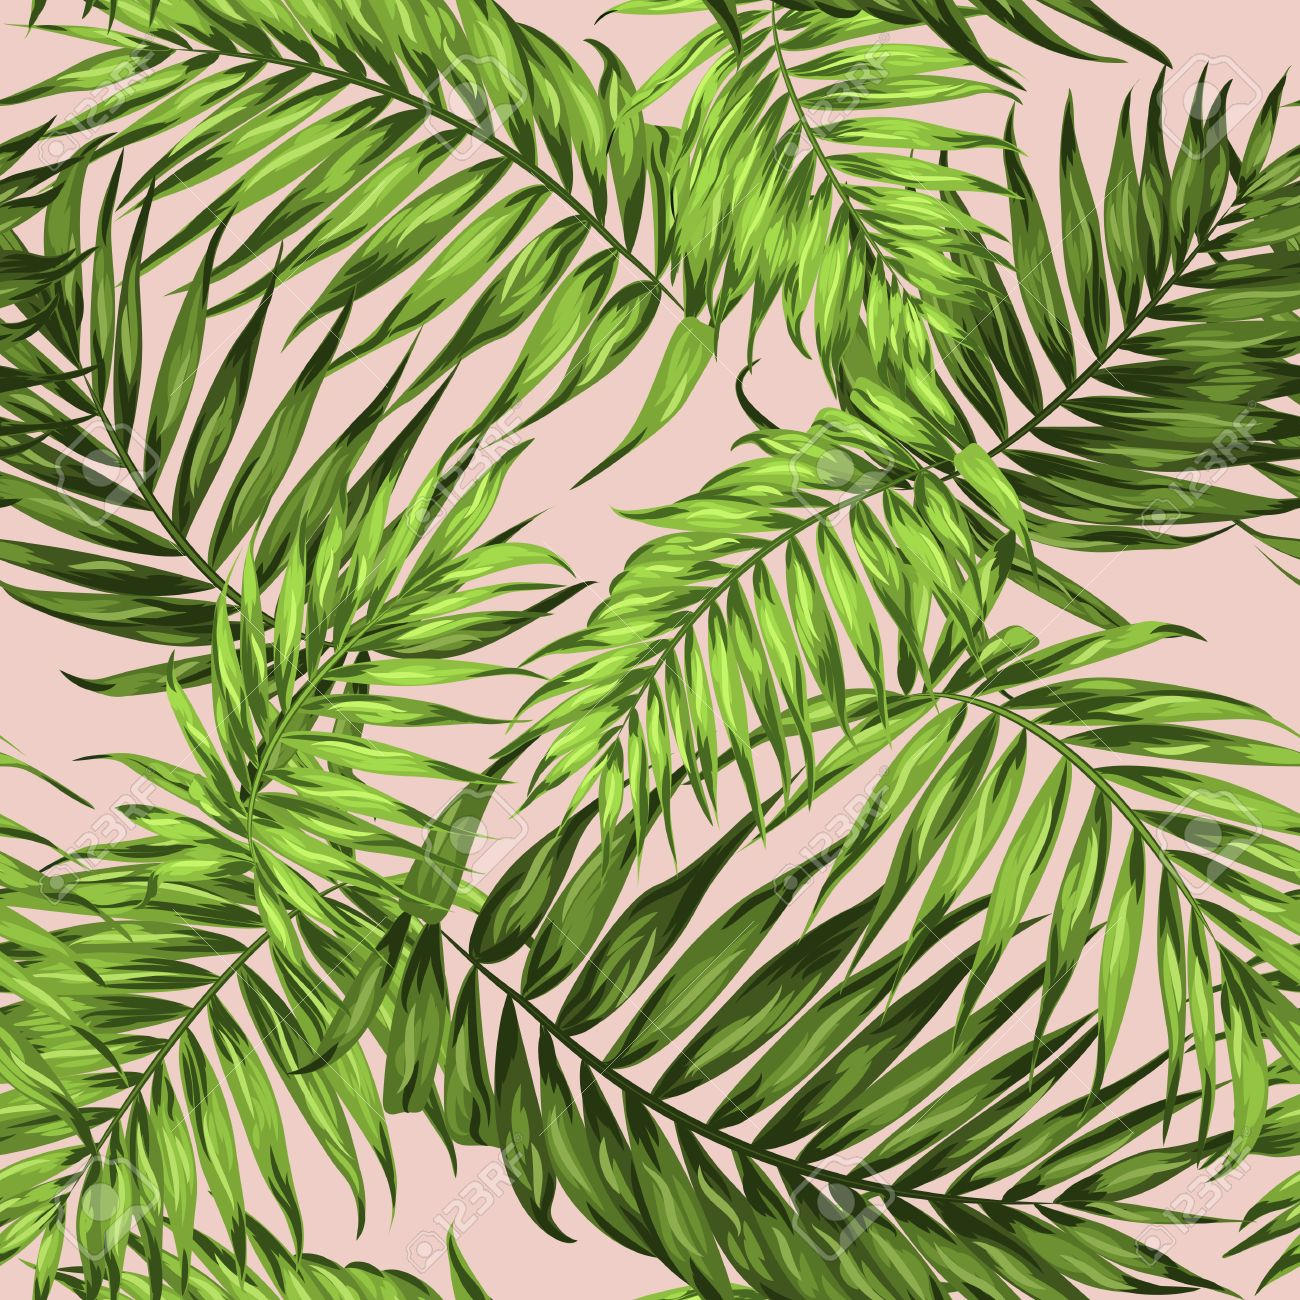 Tropical Palm Leaves Seamless Pattern Bright Green On Pale Pink Stock Photo Picture And Royalty Free Image Image 64450379 Download free image of tropical leaf on pink background by jira about palm tree, palm, flat lay, palm leaf and plant 400757. tropical palm leaves seamless pattern bright green on pale pink